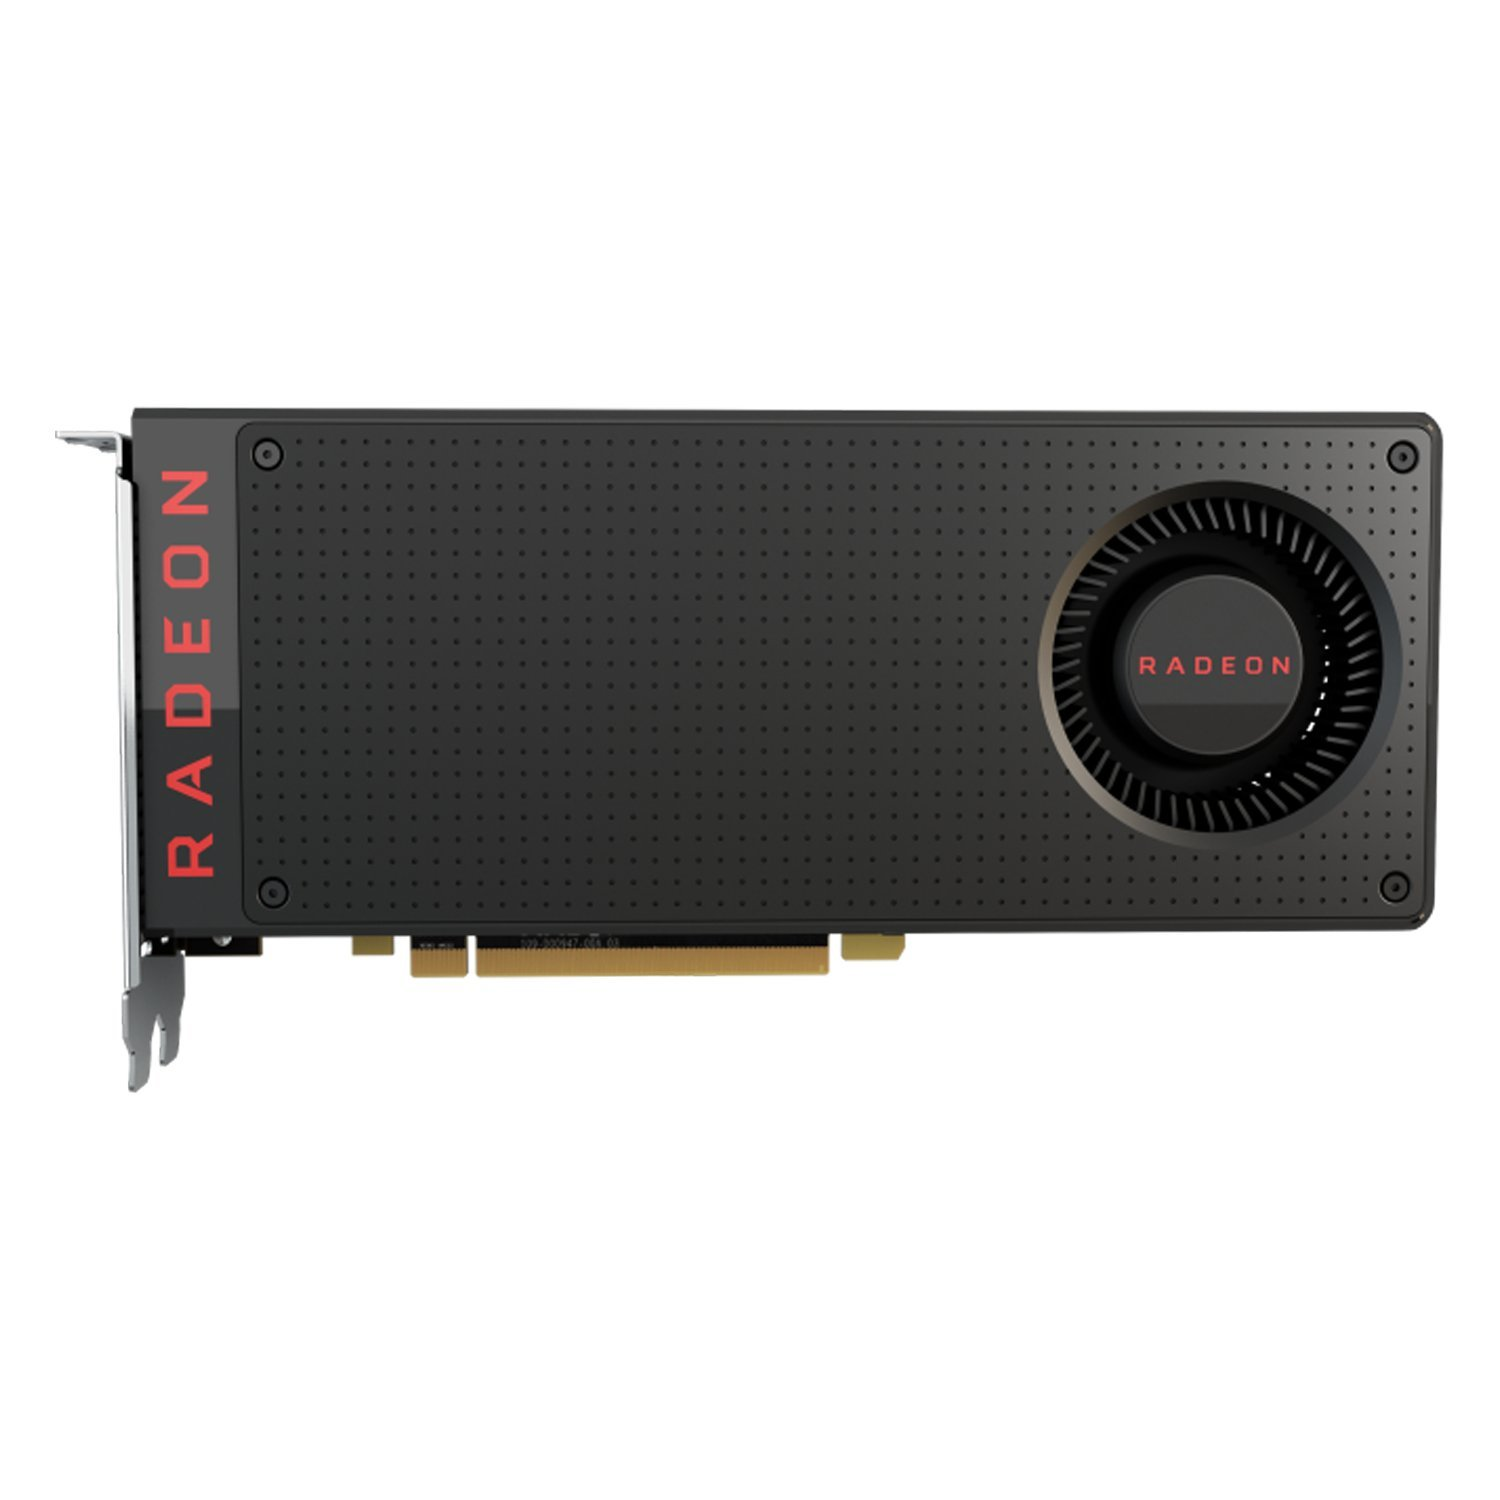 USED,Sapphire RX 570 4G graphics cards 7000MHz GDDR5 256bits HDMI+DP*3 PCI-X16USED,Sapphire RX 570 4G graphics cards 7000MHz GDDR5 256bits HDMI+DP*3 PCI-X16